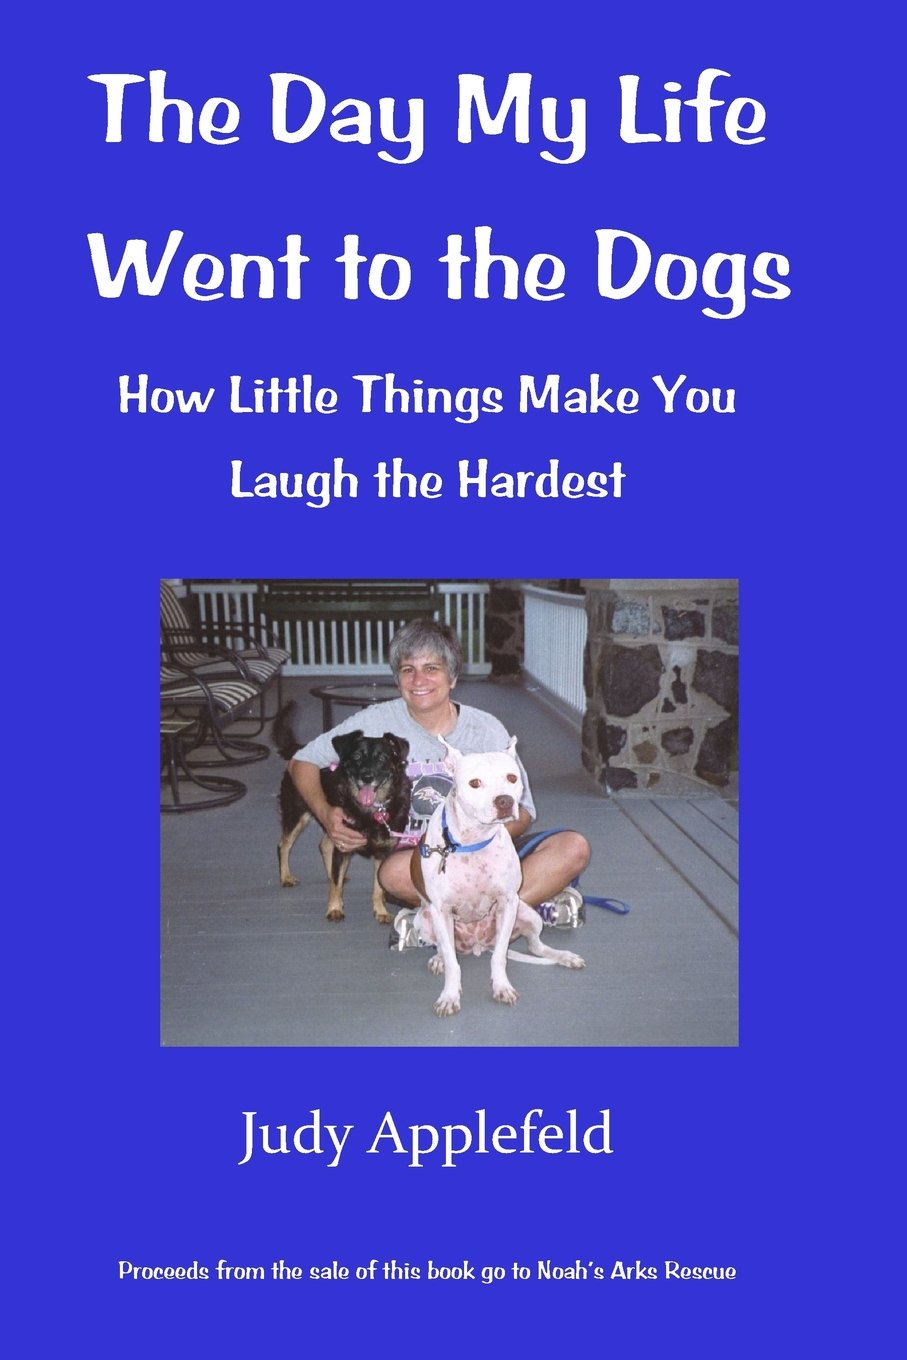 The Day My Life Went to the Dogs: How Little Things Make You Laugh the Hardest